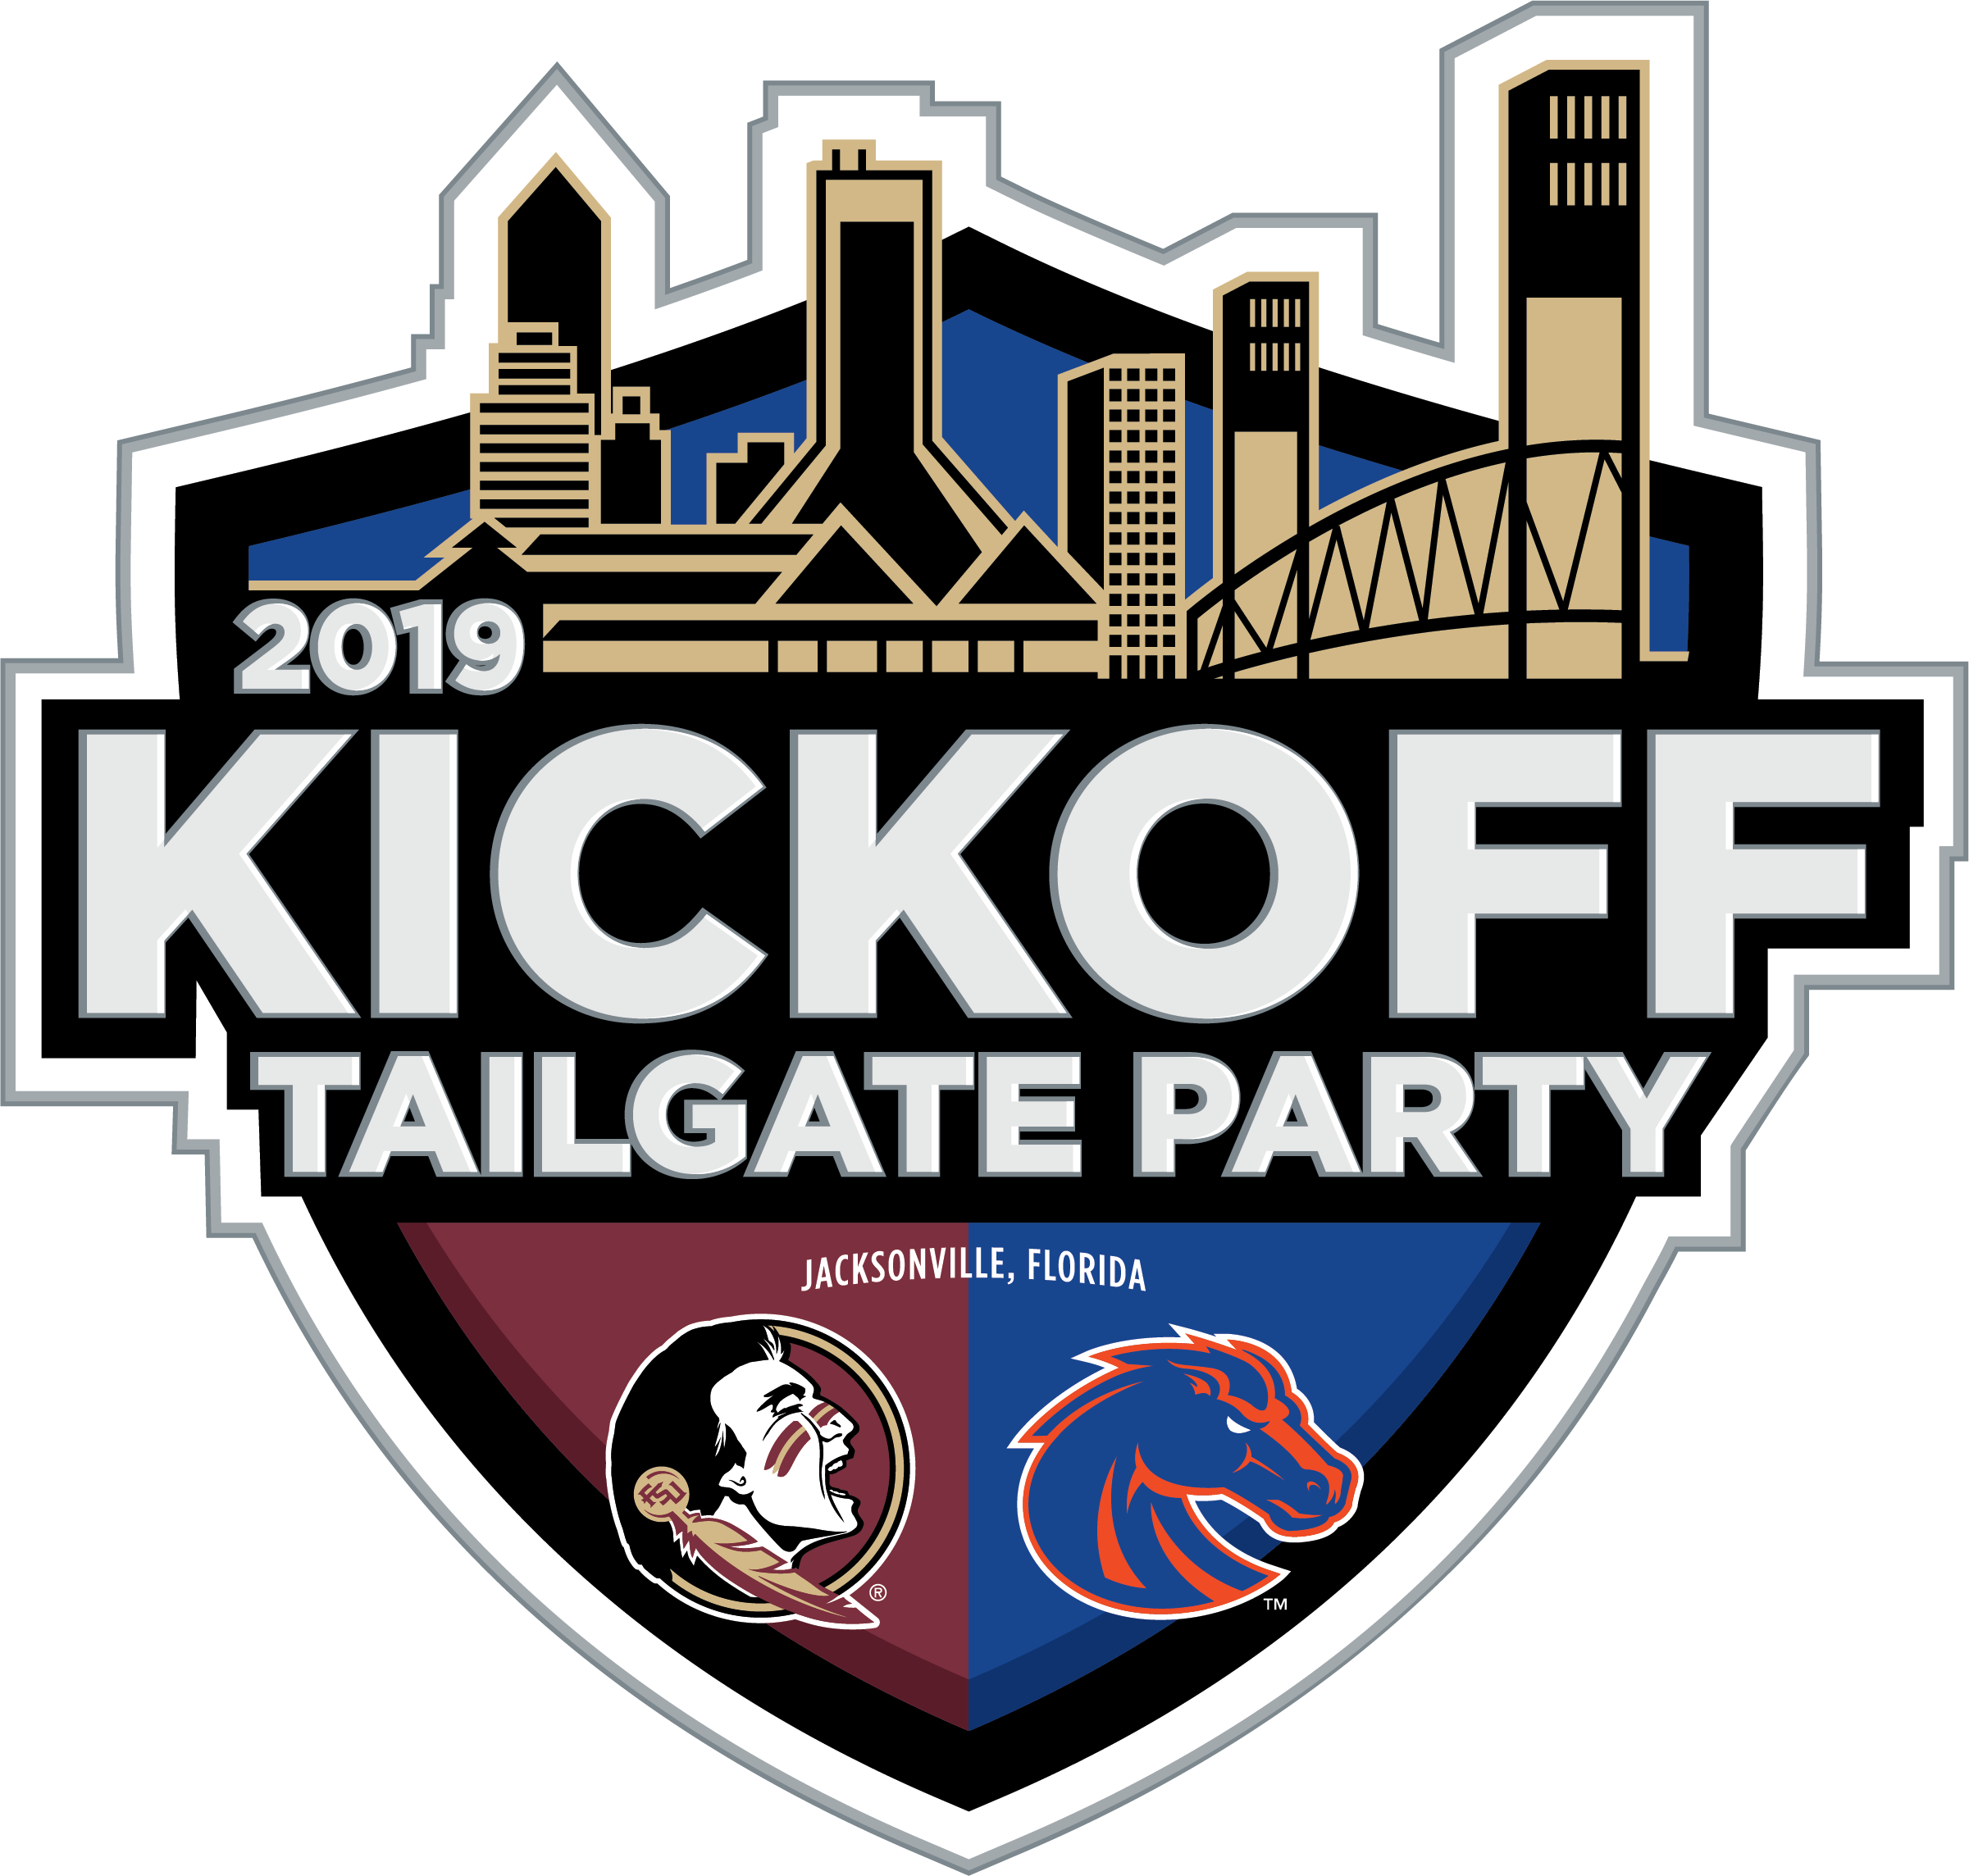 Kickoff Tailgate Party